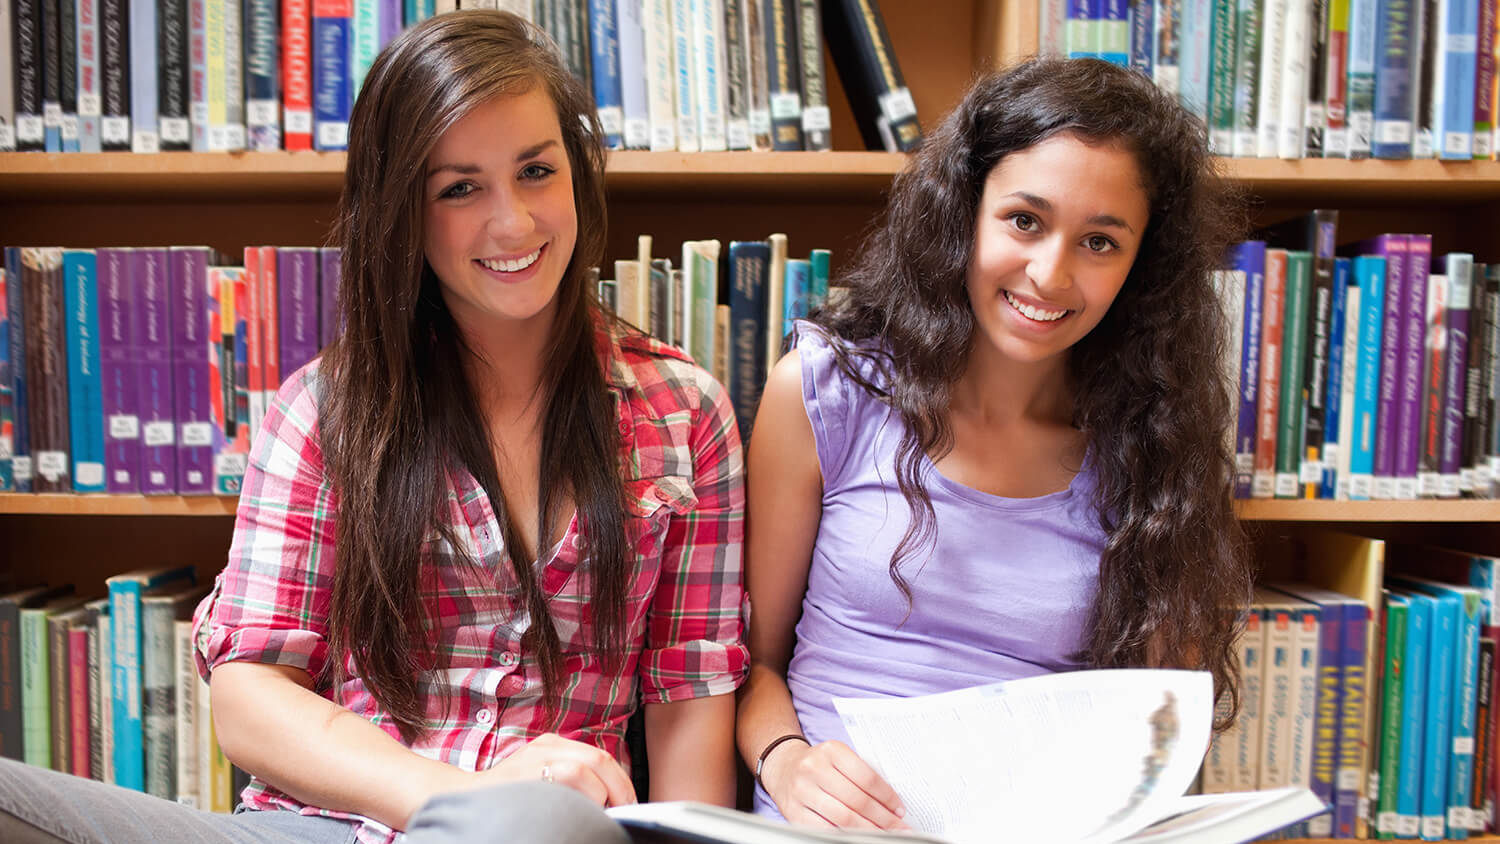 Two young women reading books in the library